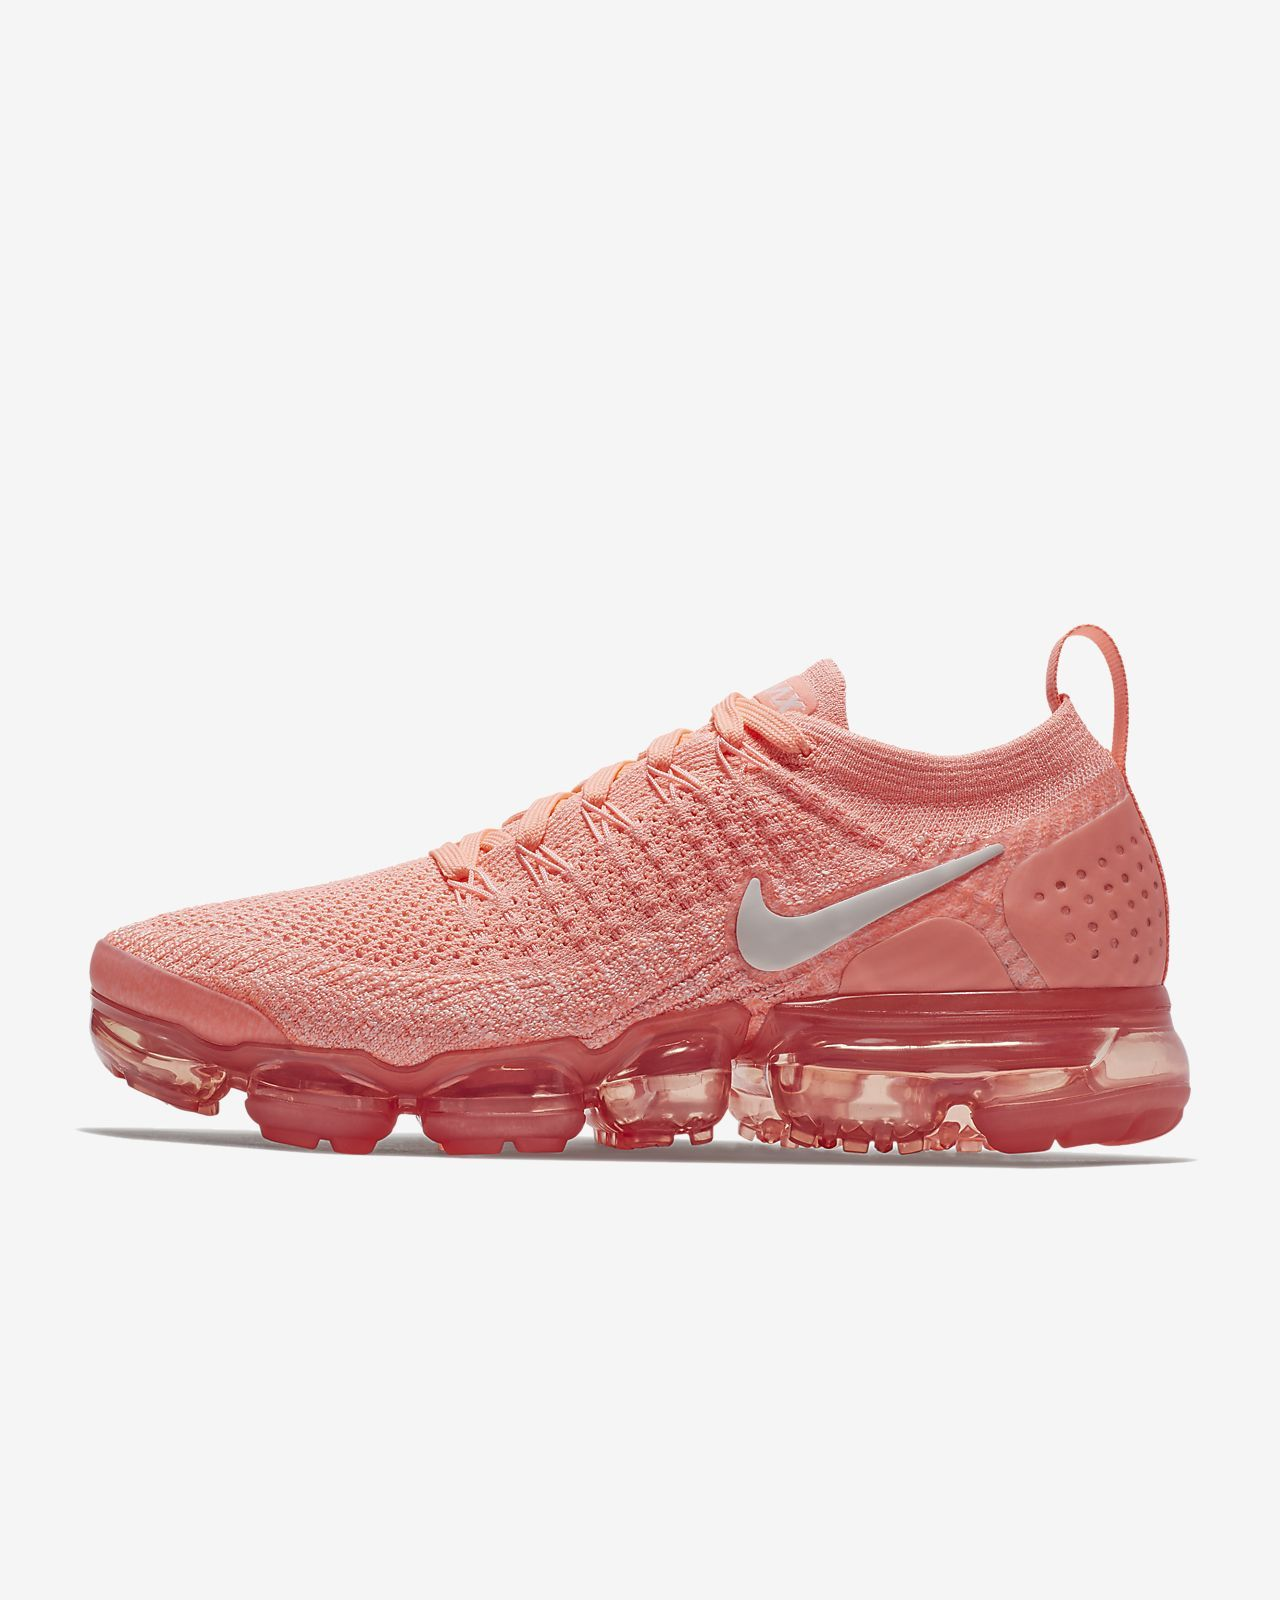 b4c61cacf10 Womens Crimson Pulse   Coral Stardust   Sail Nike Air VaporMax Flyknit 2  Running Shoe